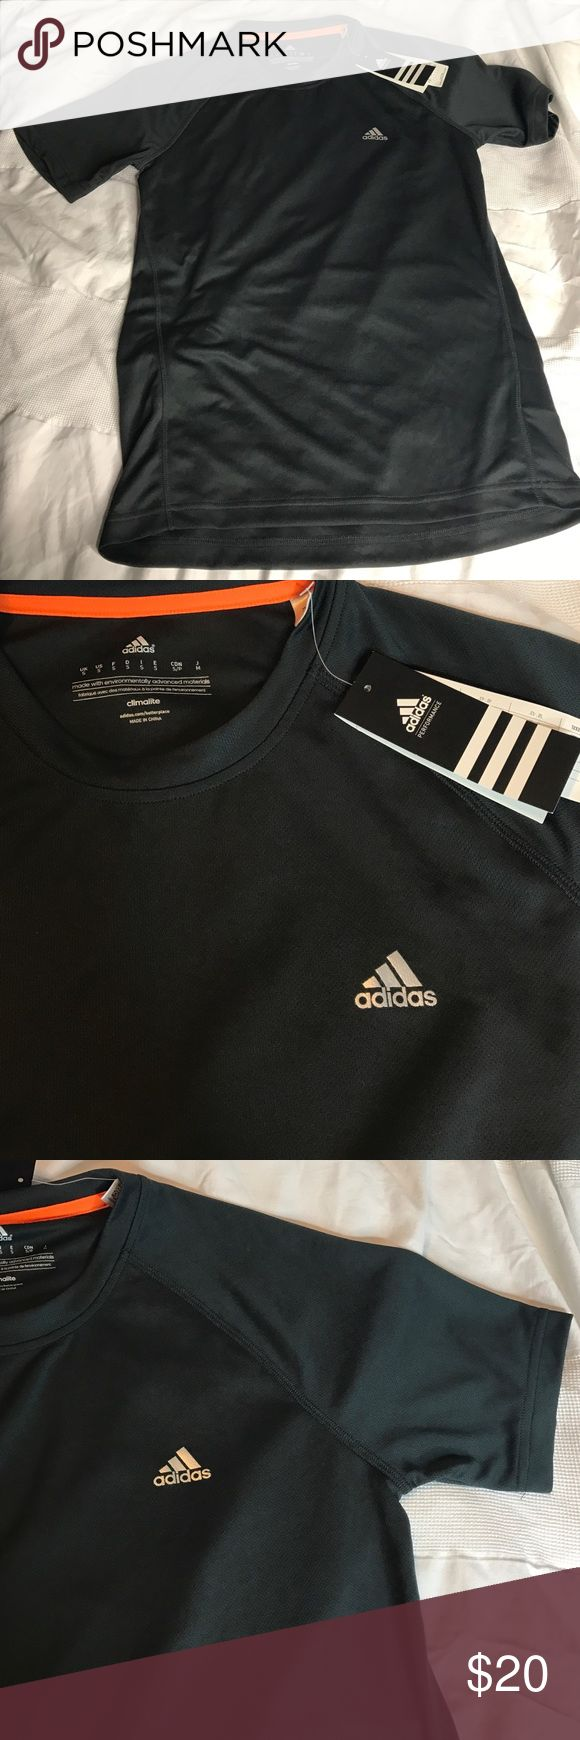 Adidas climate control performance T Brand new with tags Adidas Shirts Tees - Short Sleeve